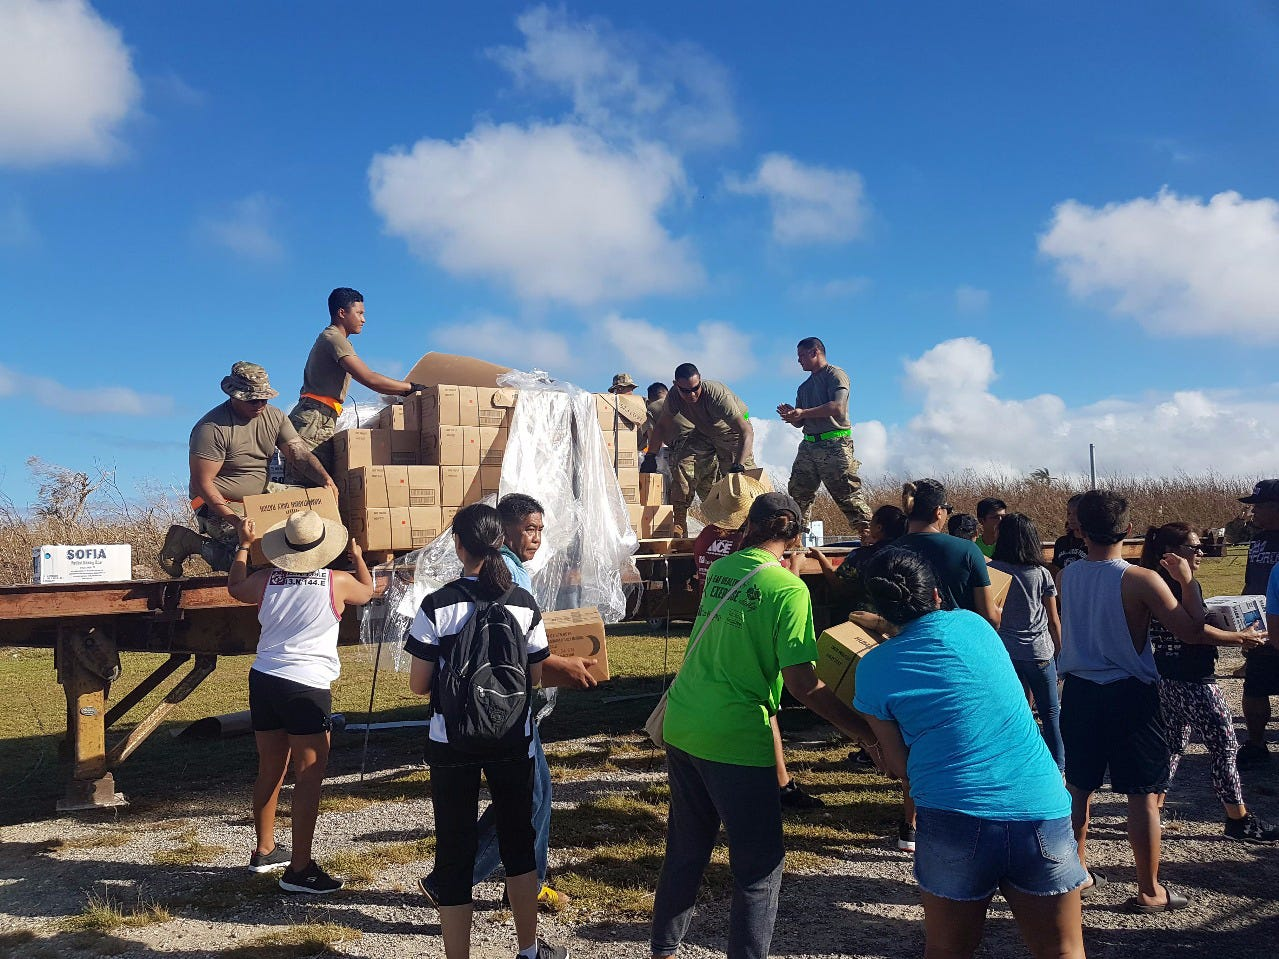 SAIPAN, Commonwealth of the Northern Mariana Islands (Oct. 28, 2018) — Guam-based U.S. Army reservists from Echo Company 100th Battalion, 442nd Infantry Division, volunteer to distribute relief supplies to island residents affected by Super Typhoon Yutu in Saipan Oct. 28. Service members from Joint Region Marianas and Indo-Pacific Command are providing Department of Defense support to the Commonwealth of the Northern Mariana Islands' civil and local officials as part of the FEMA-supported Super Typhoon Yutu recovery effort.